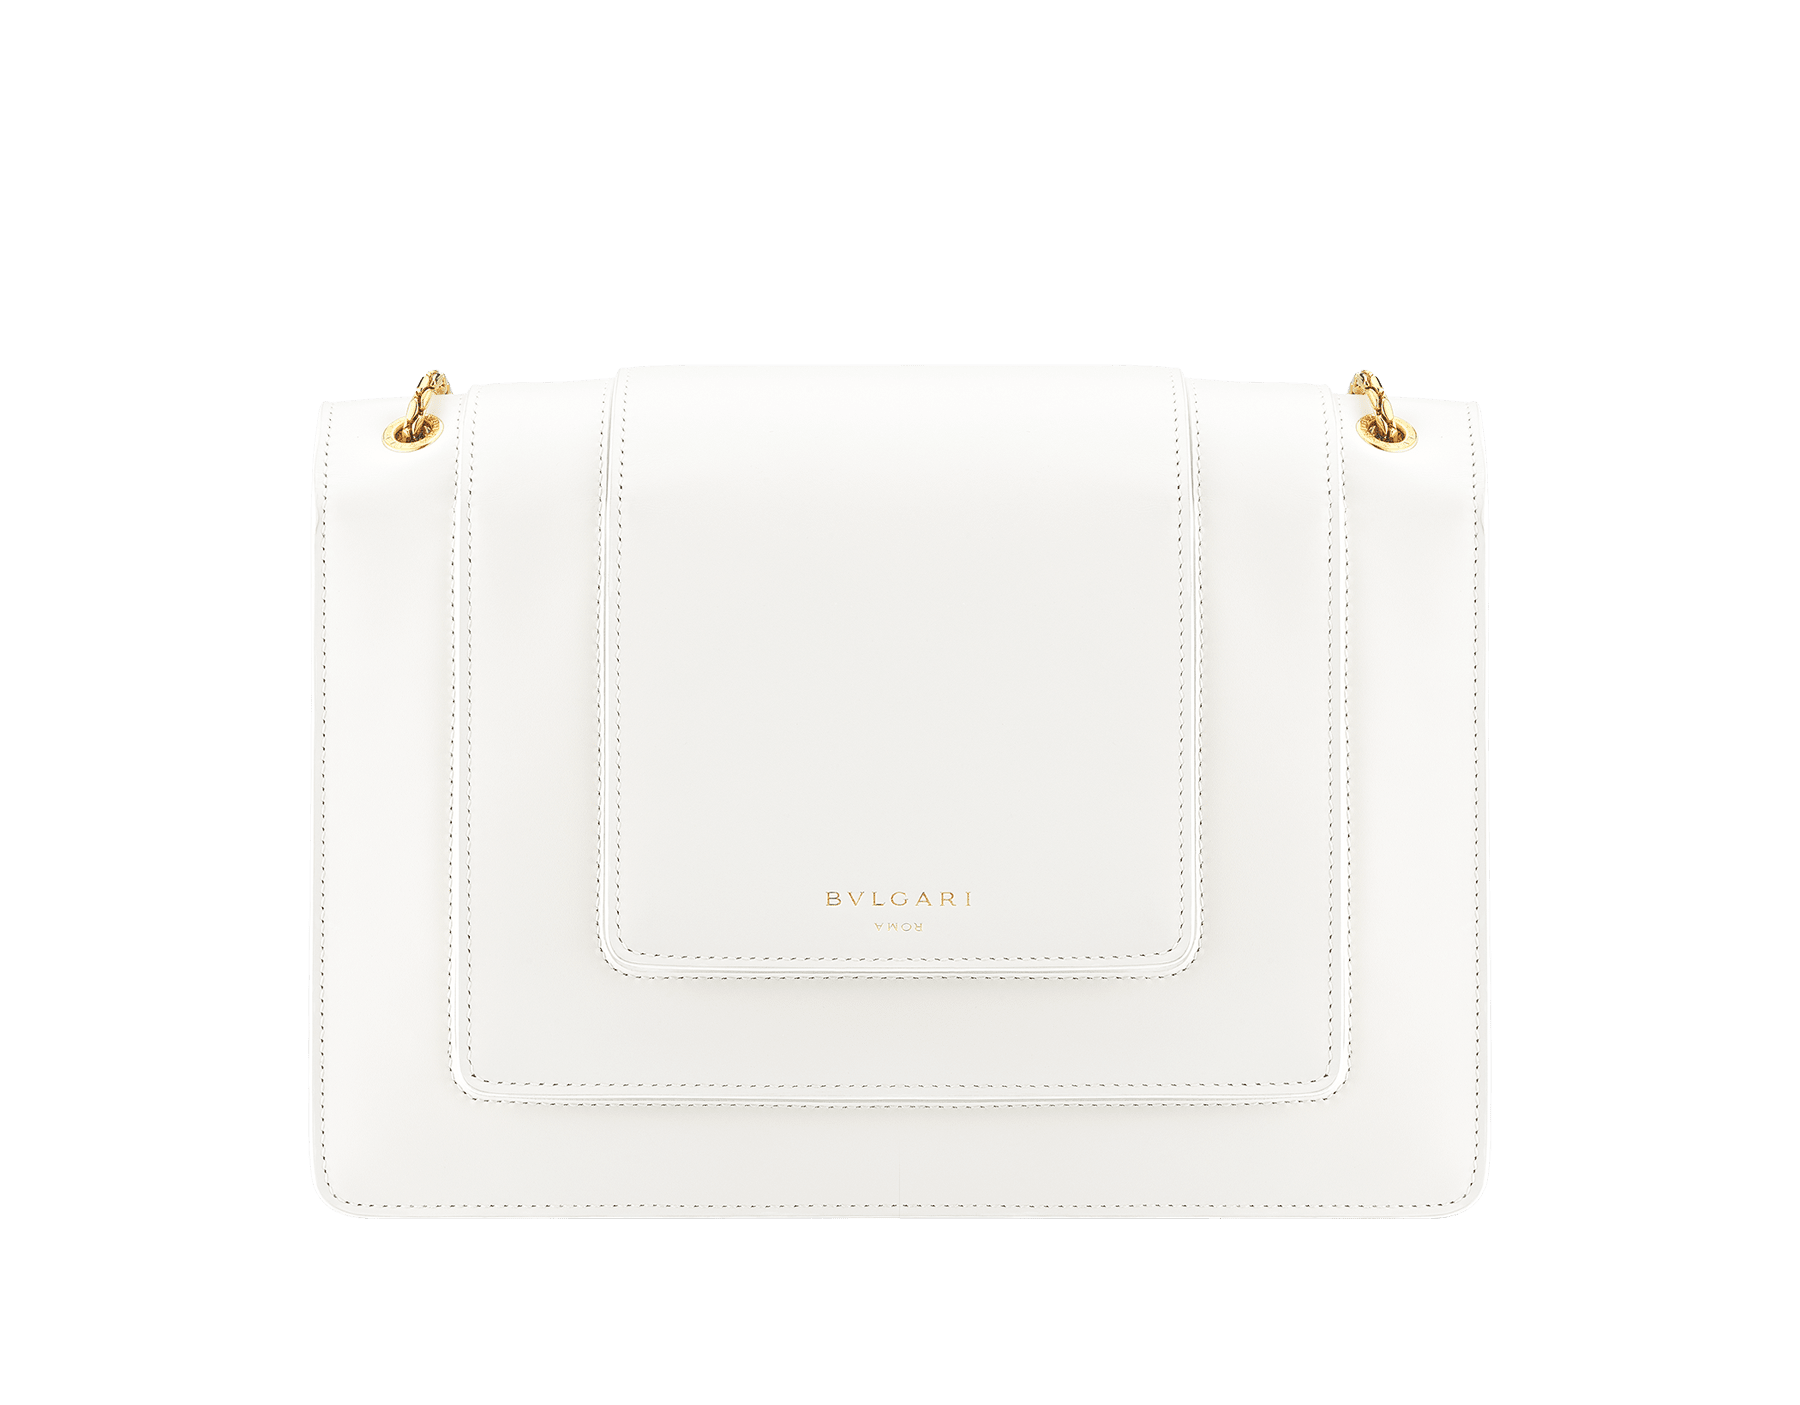 Alexander Wang x Bvlgari Triplette shoulder bag in smooth white calf leather. New triple Serpenti head closure in antique gold plated brass with tempting red enamel eyes. Limited edition. 288744 image 3